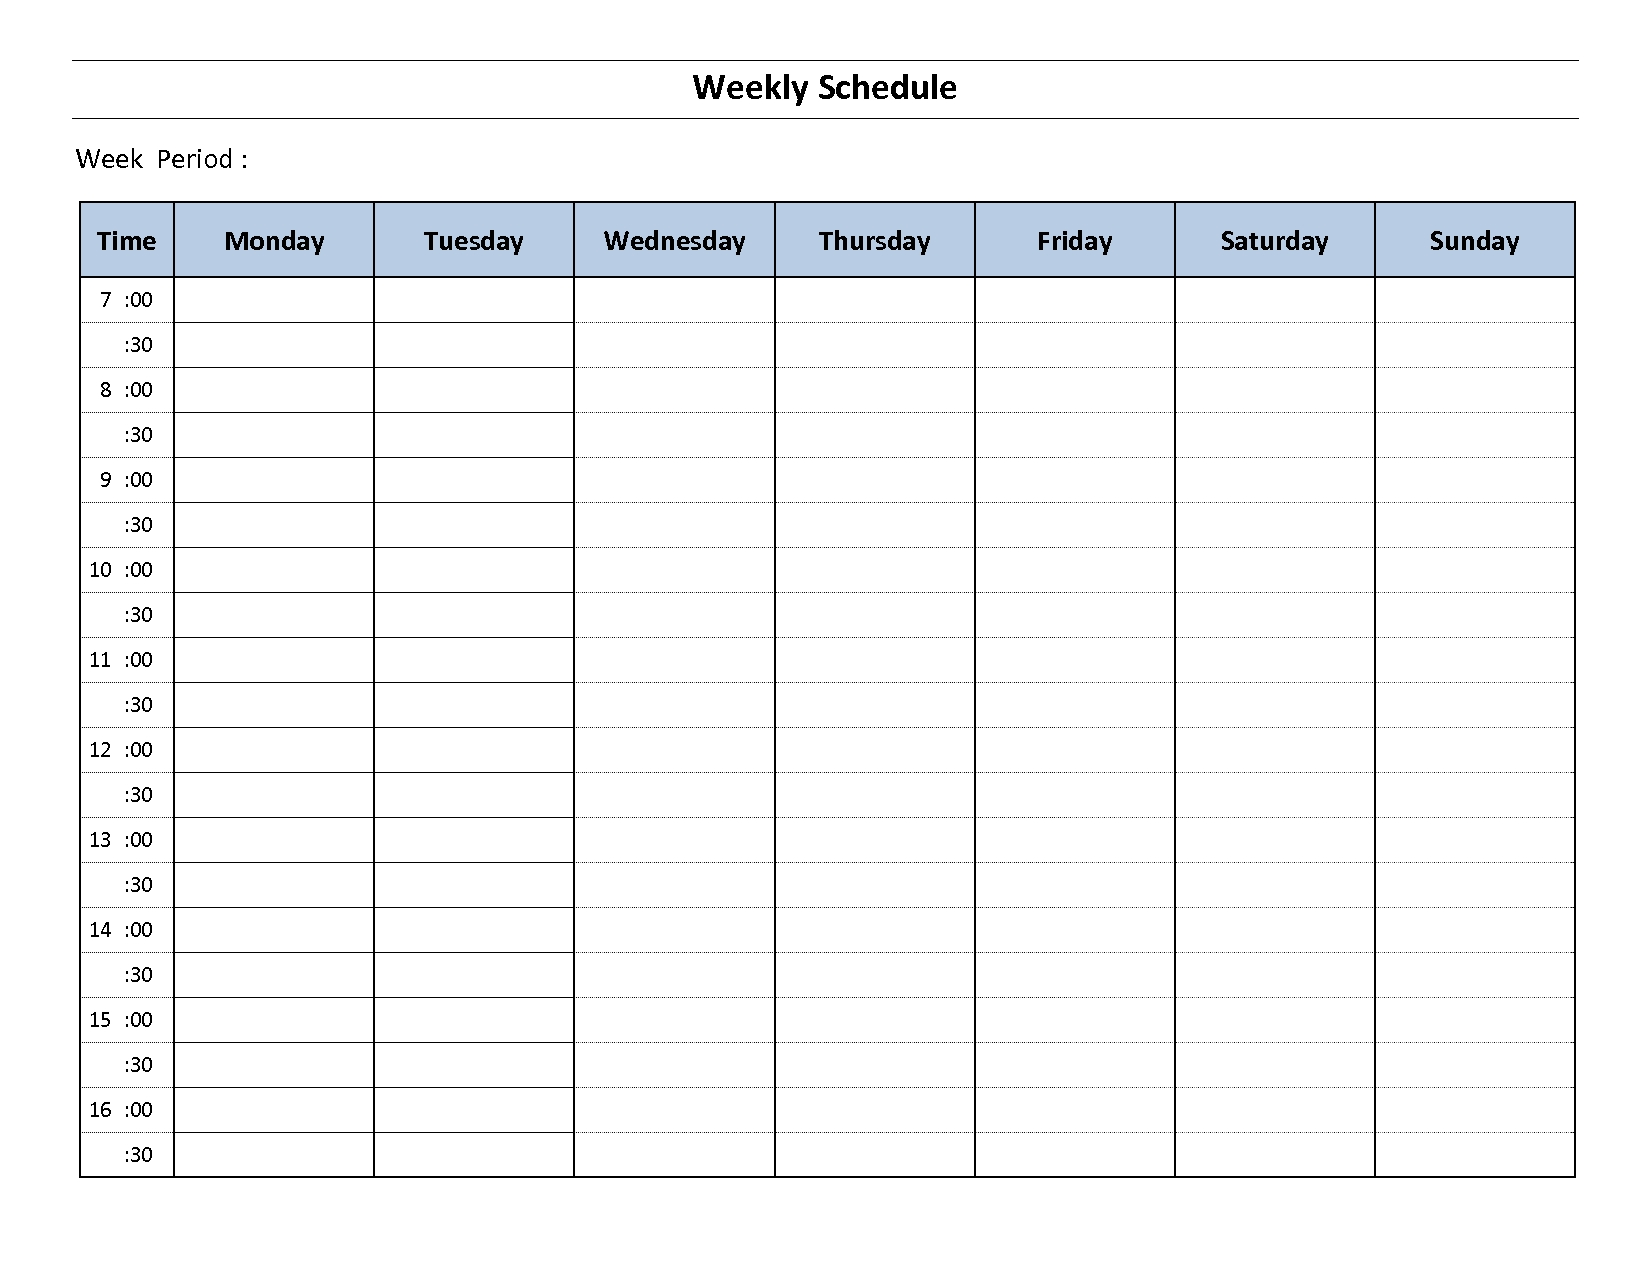 Fresh Weekly Schedule Template Printable | Aguakatedigital Templates  Free Template For Weekly Schedule